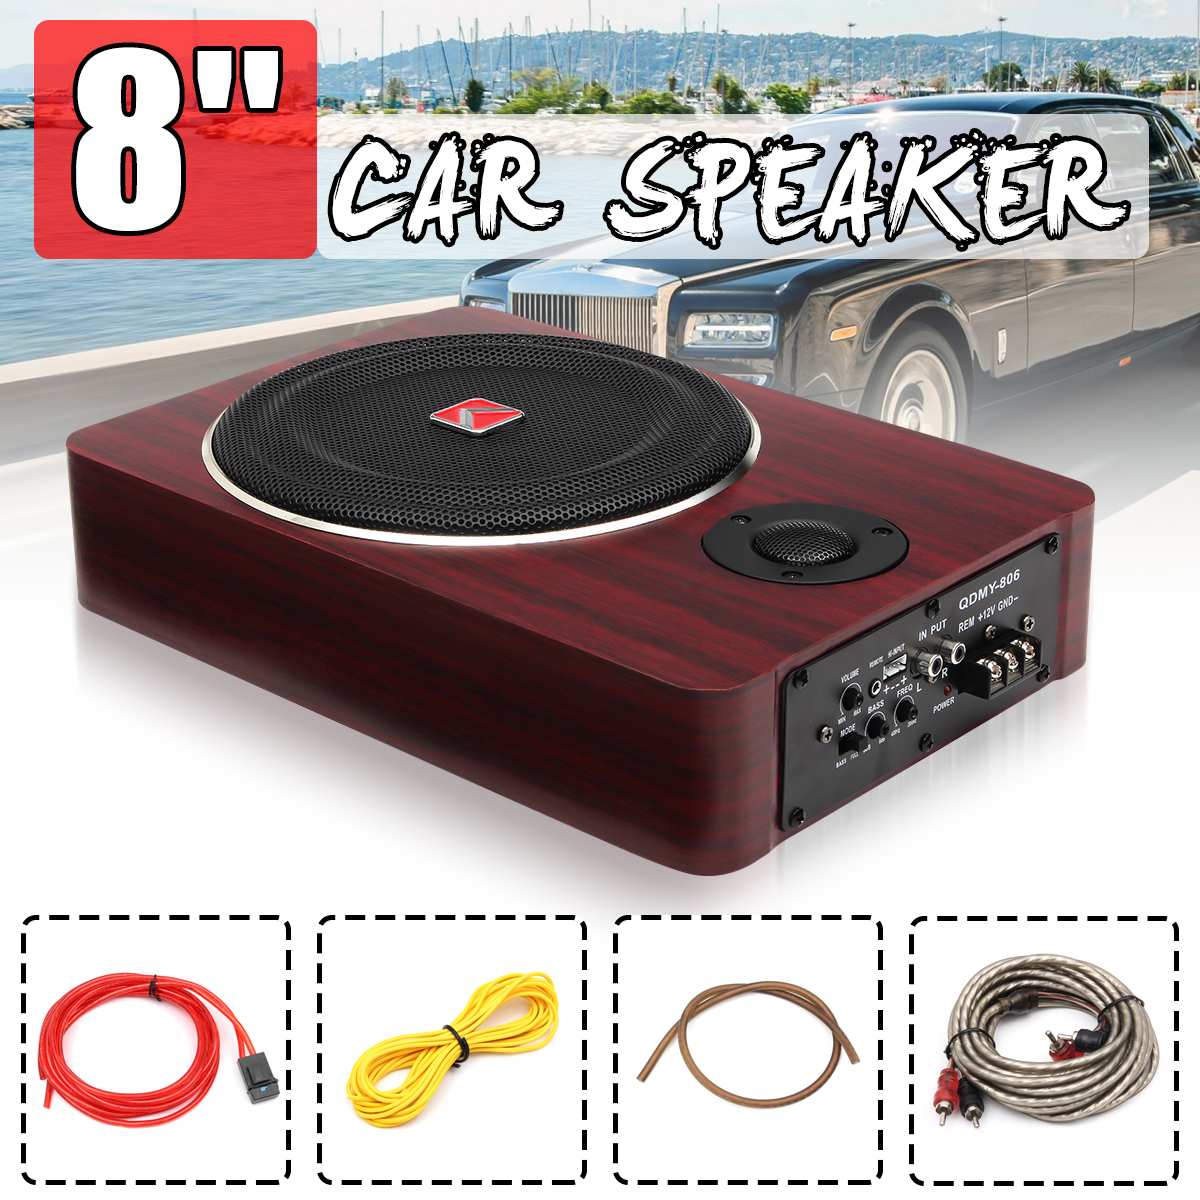 8 inch 600W Wood Under Seat Car Subwoofers Speaker Active 12V Auto Car Audio Stereo Brass Sub Woofer Amplifier Speakers powerful 8 inch 12v car audio acoustic portable active 500watts speakers amplifier boom box stage louder speaker subwoofer